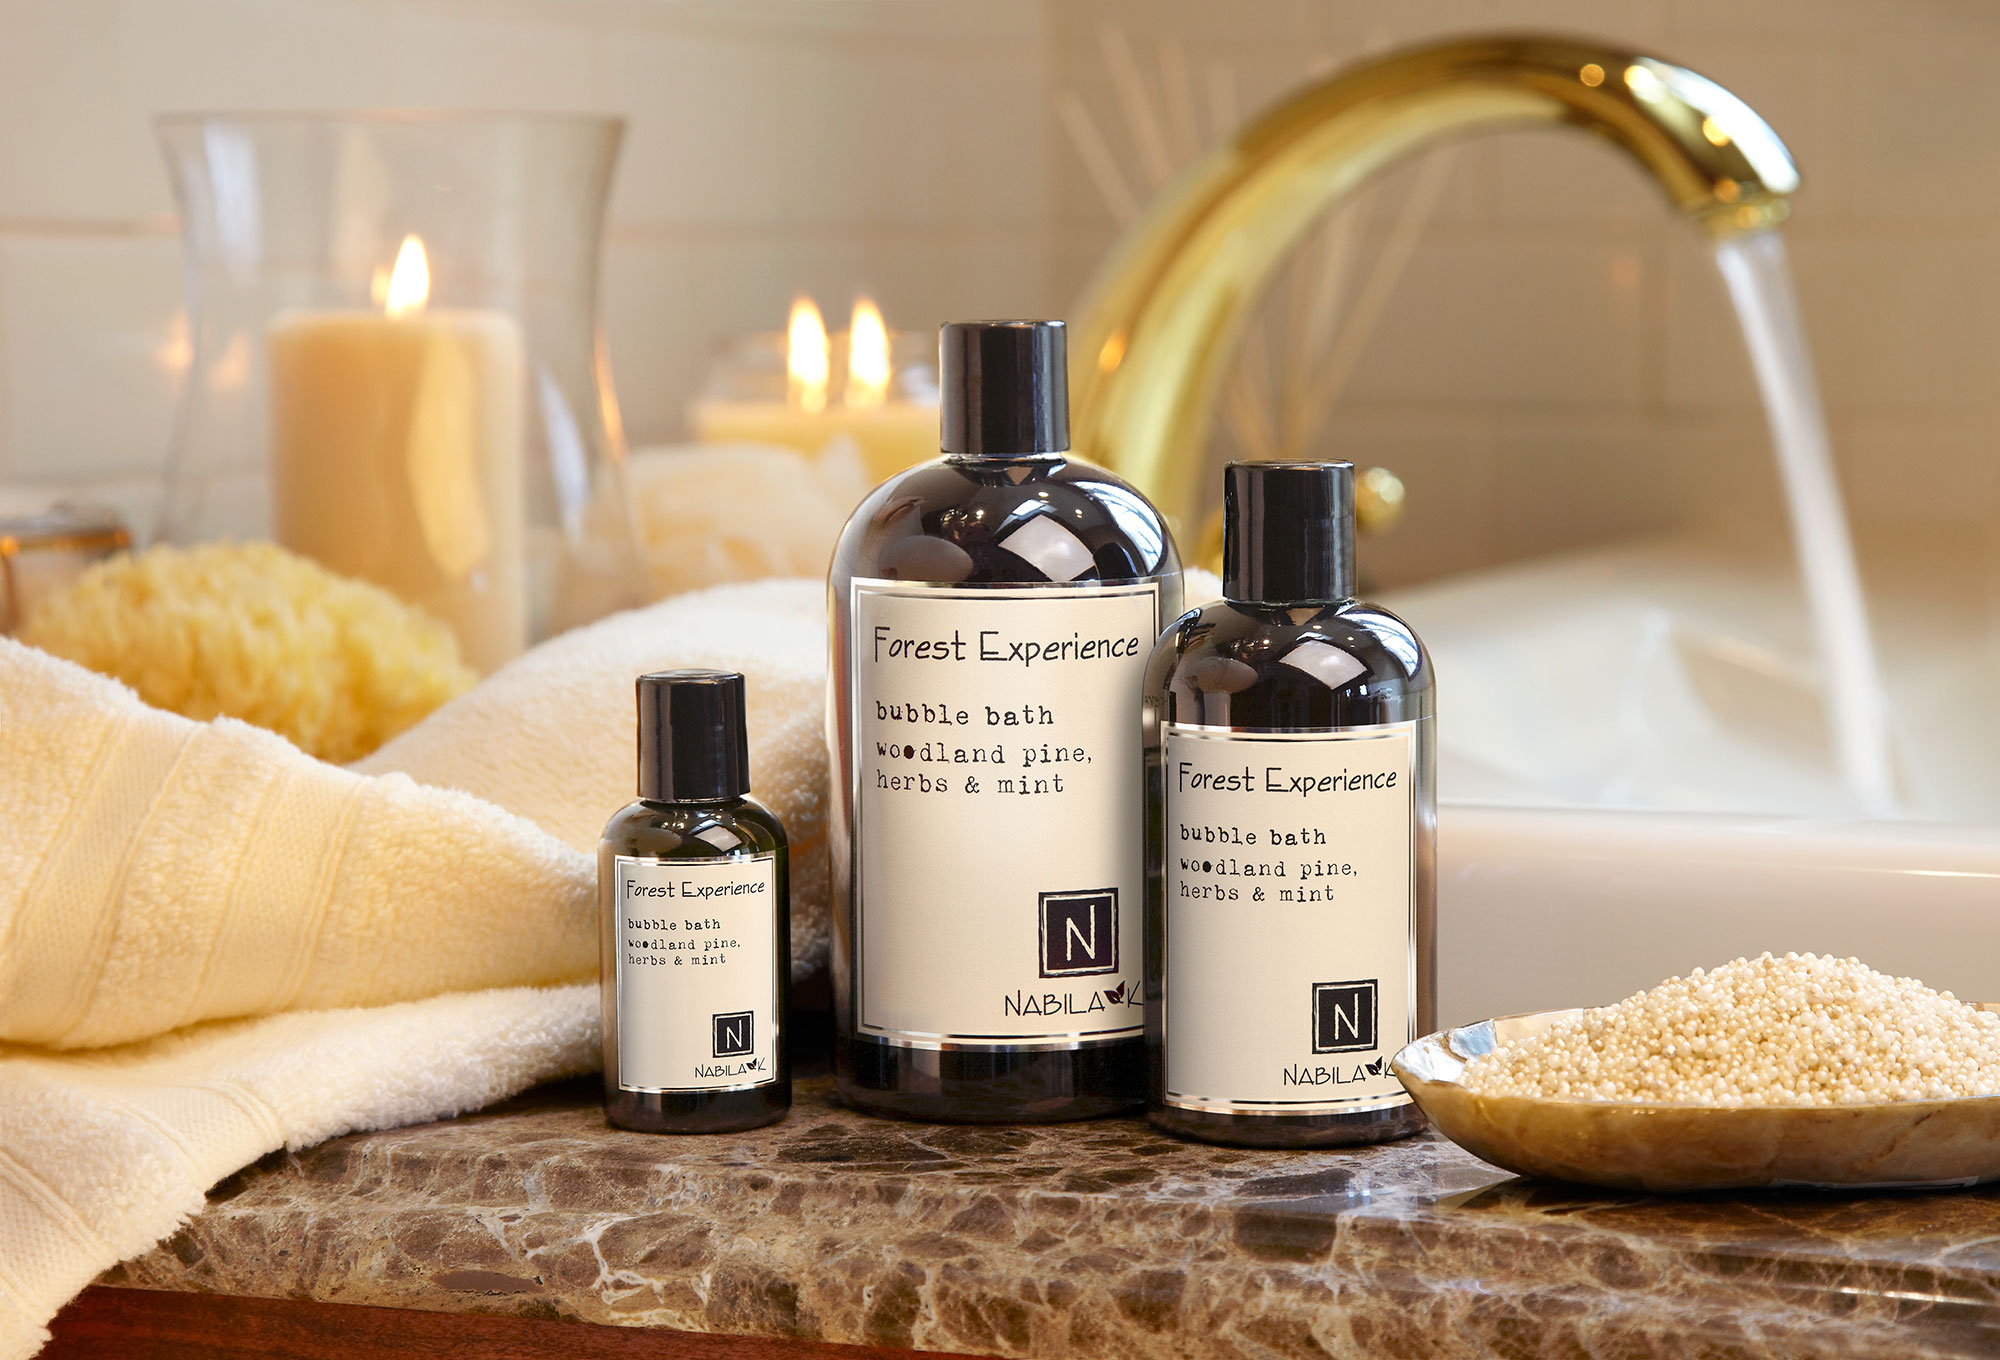 Small, Medium, and Large Bottles of Forest Experience Bubble Bath Woodland Pine, Herbs and Mints